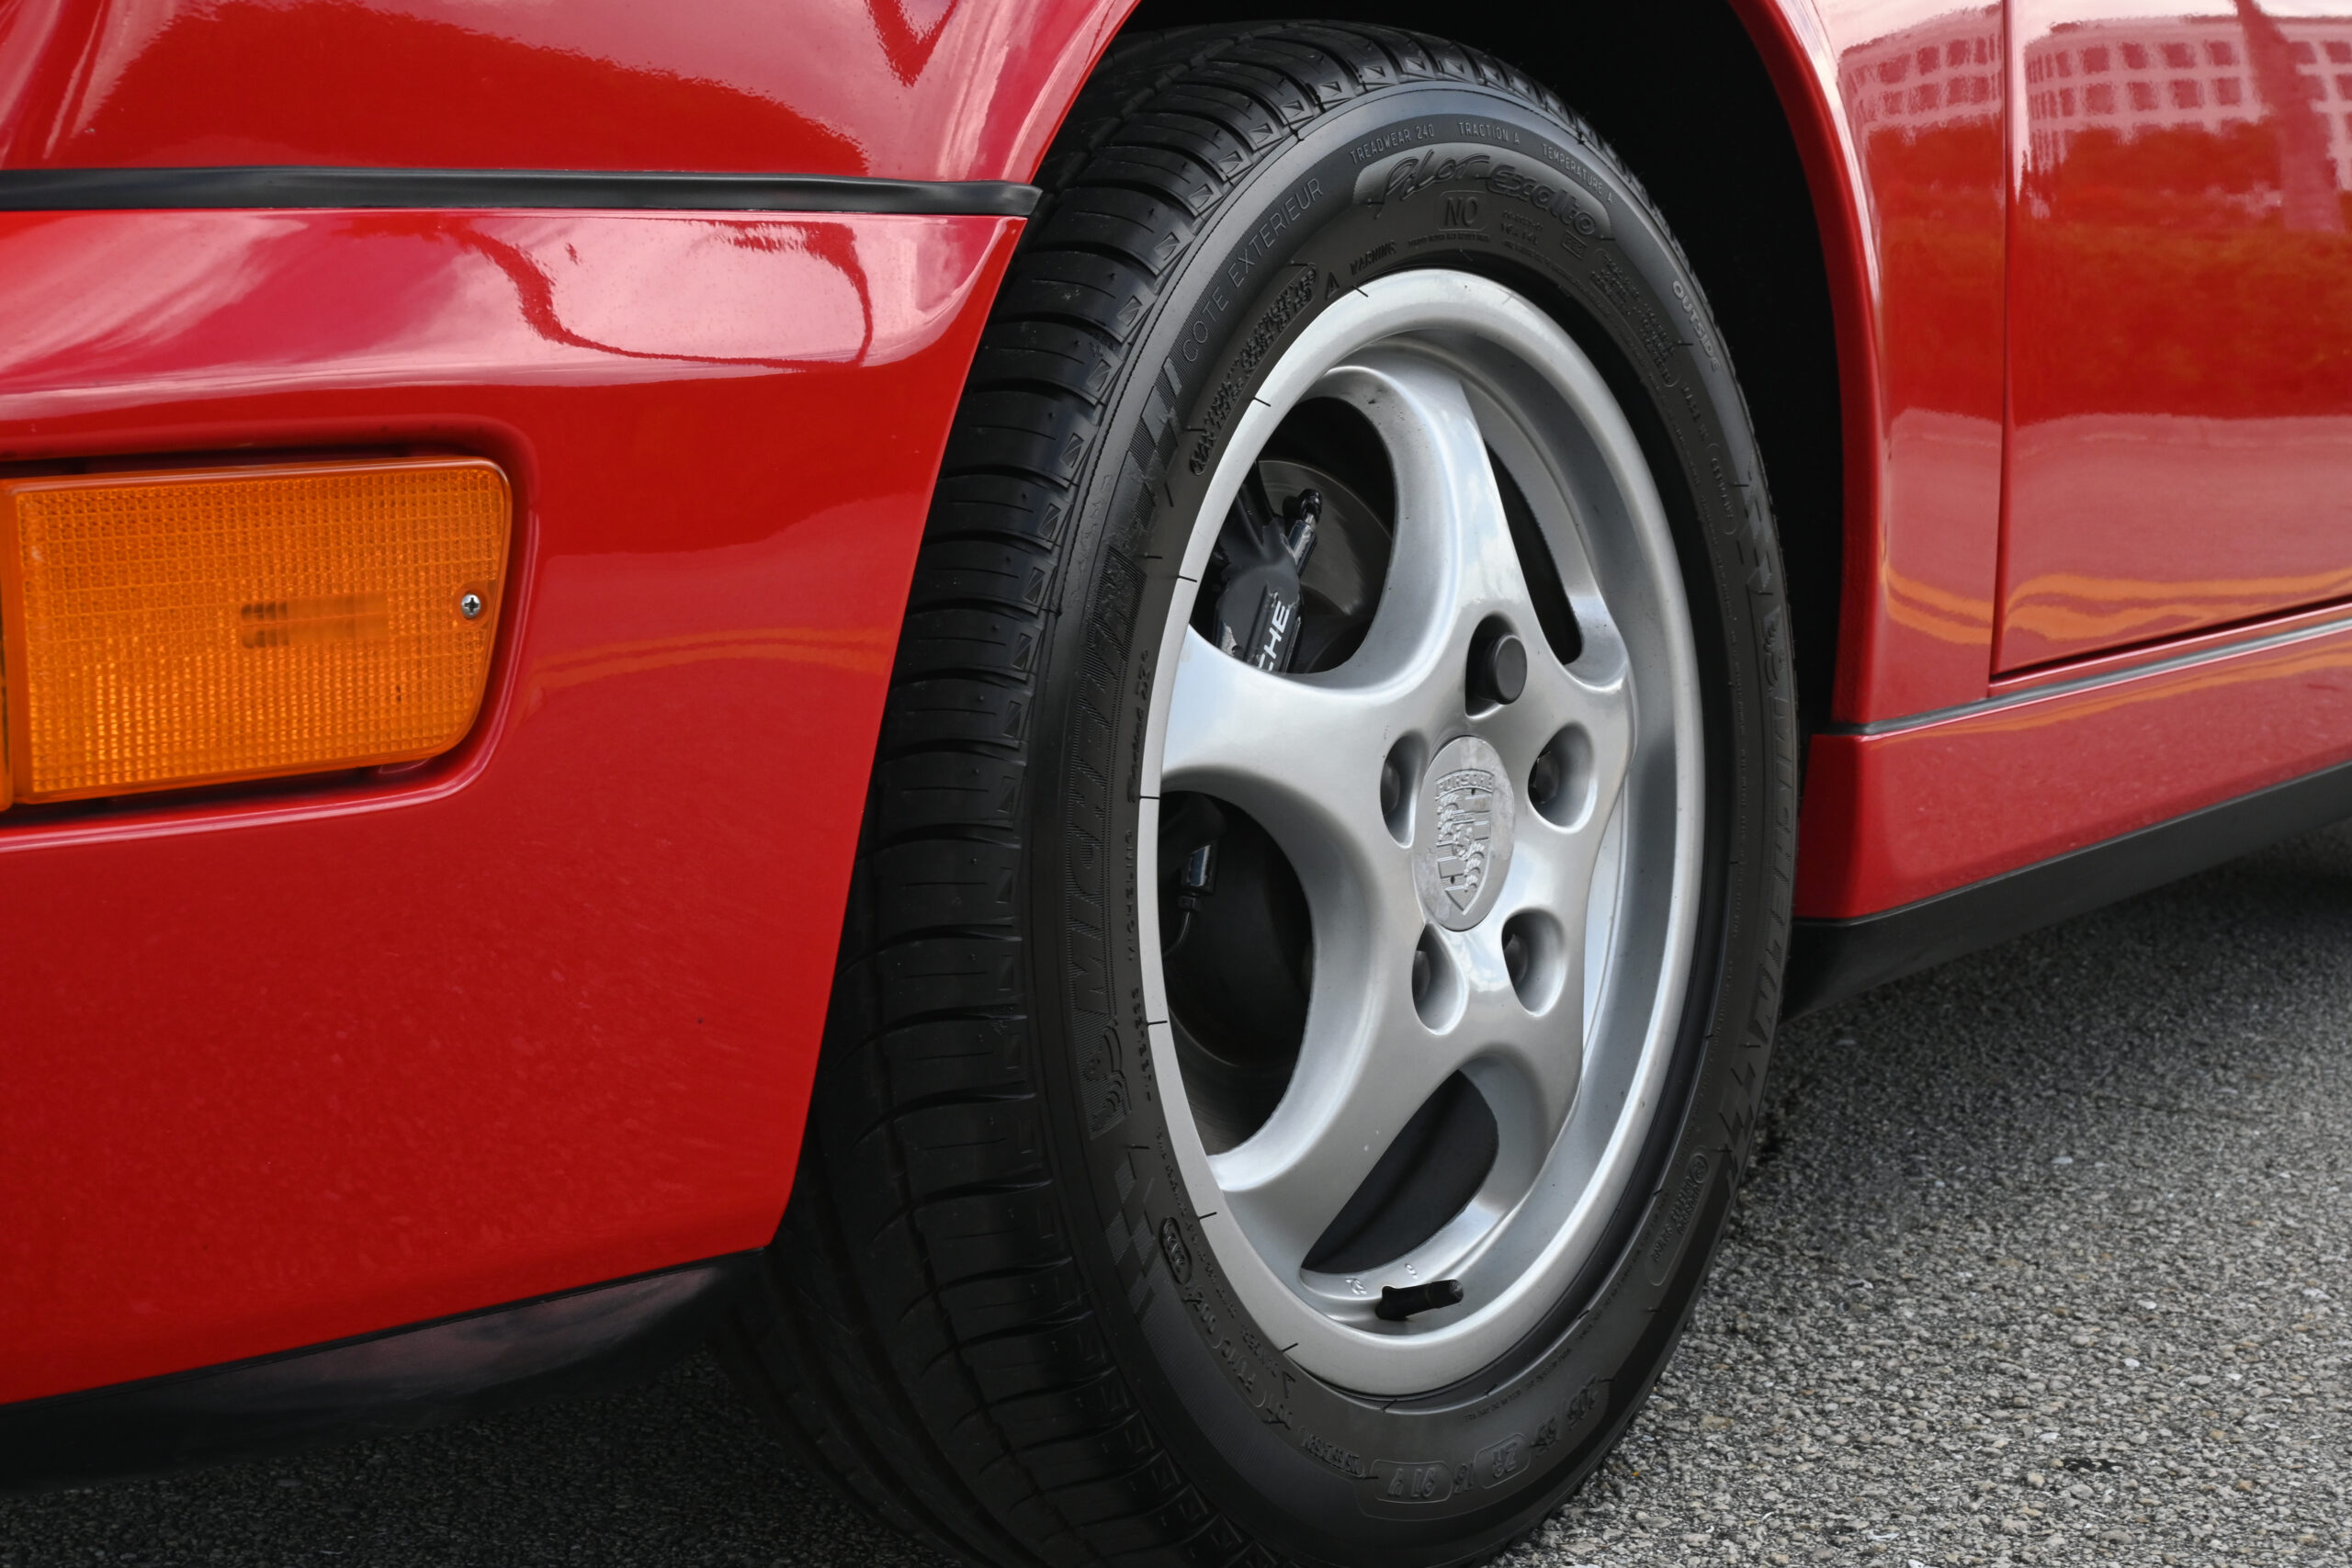 1992 964 Targa Carrera 2, only 37K actual miles, recently serviced in Germany, Original Condition, interior, and paint, Blaupunkt Bremen Bluetooth radio